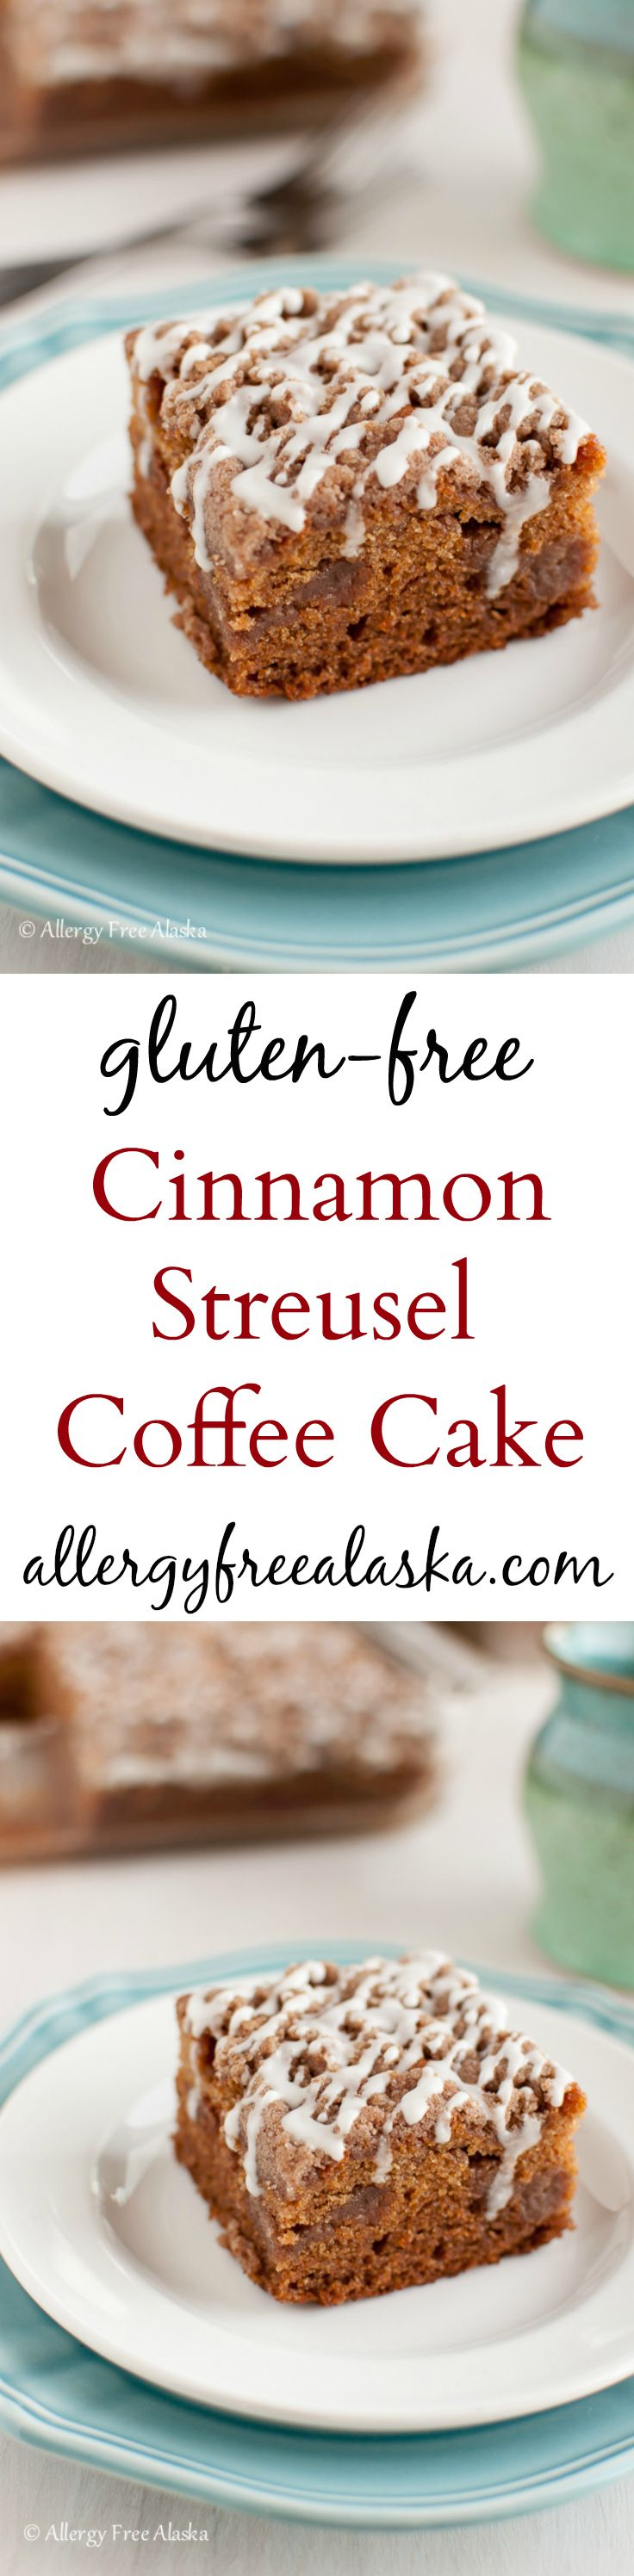 This is so, SO good! Cinnamon Streusel Coffee Cake {gluten-free, dairy-free} Recipe from Allergy Free Alaska